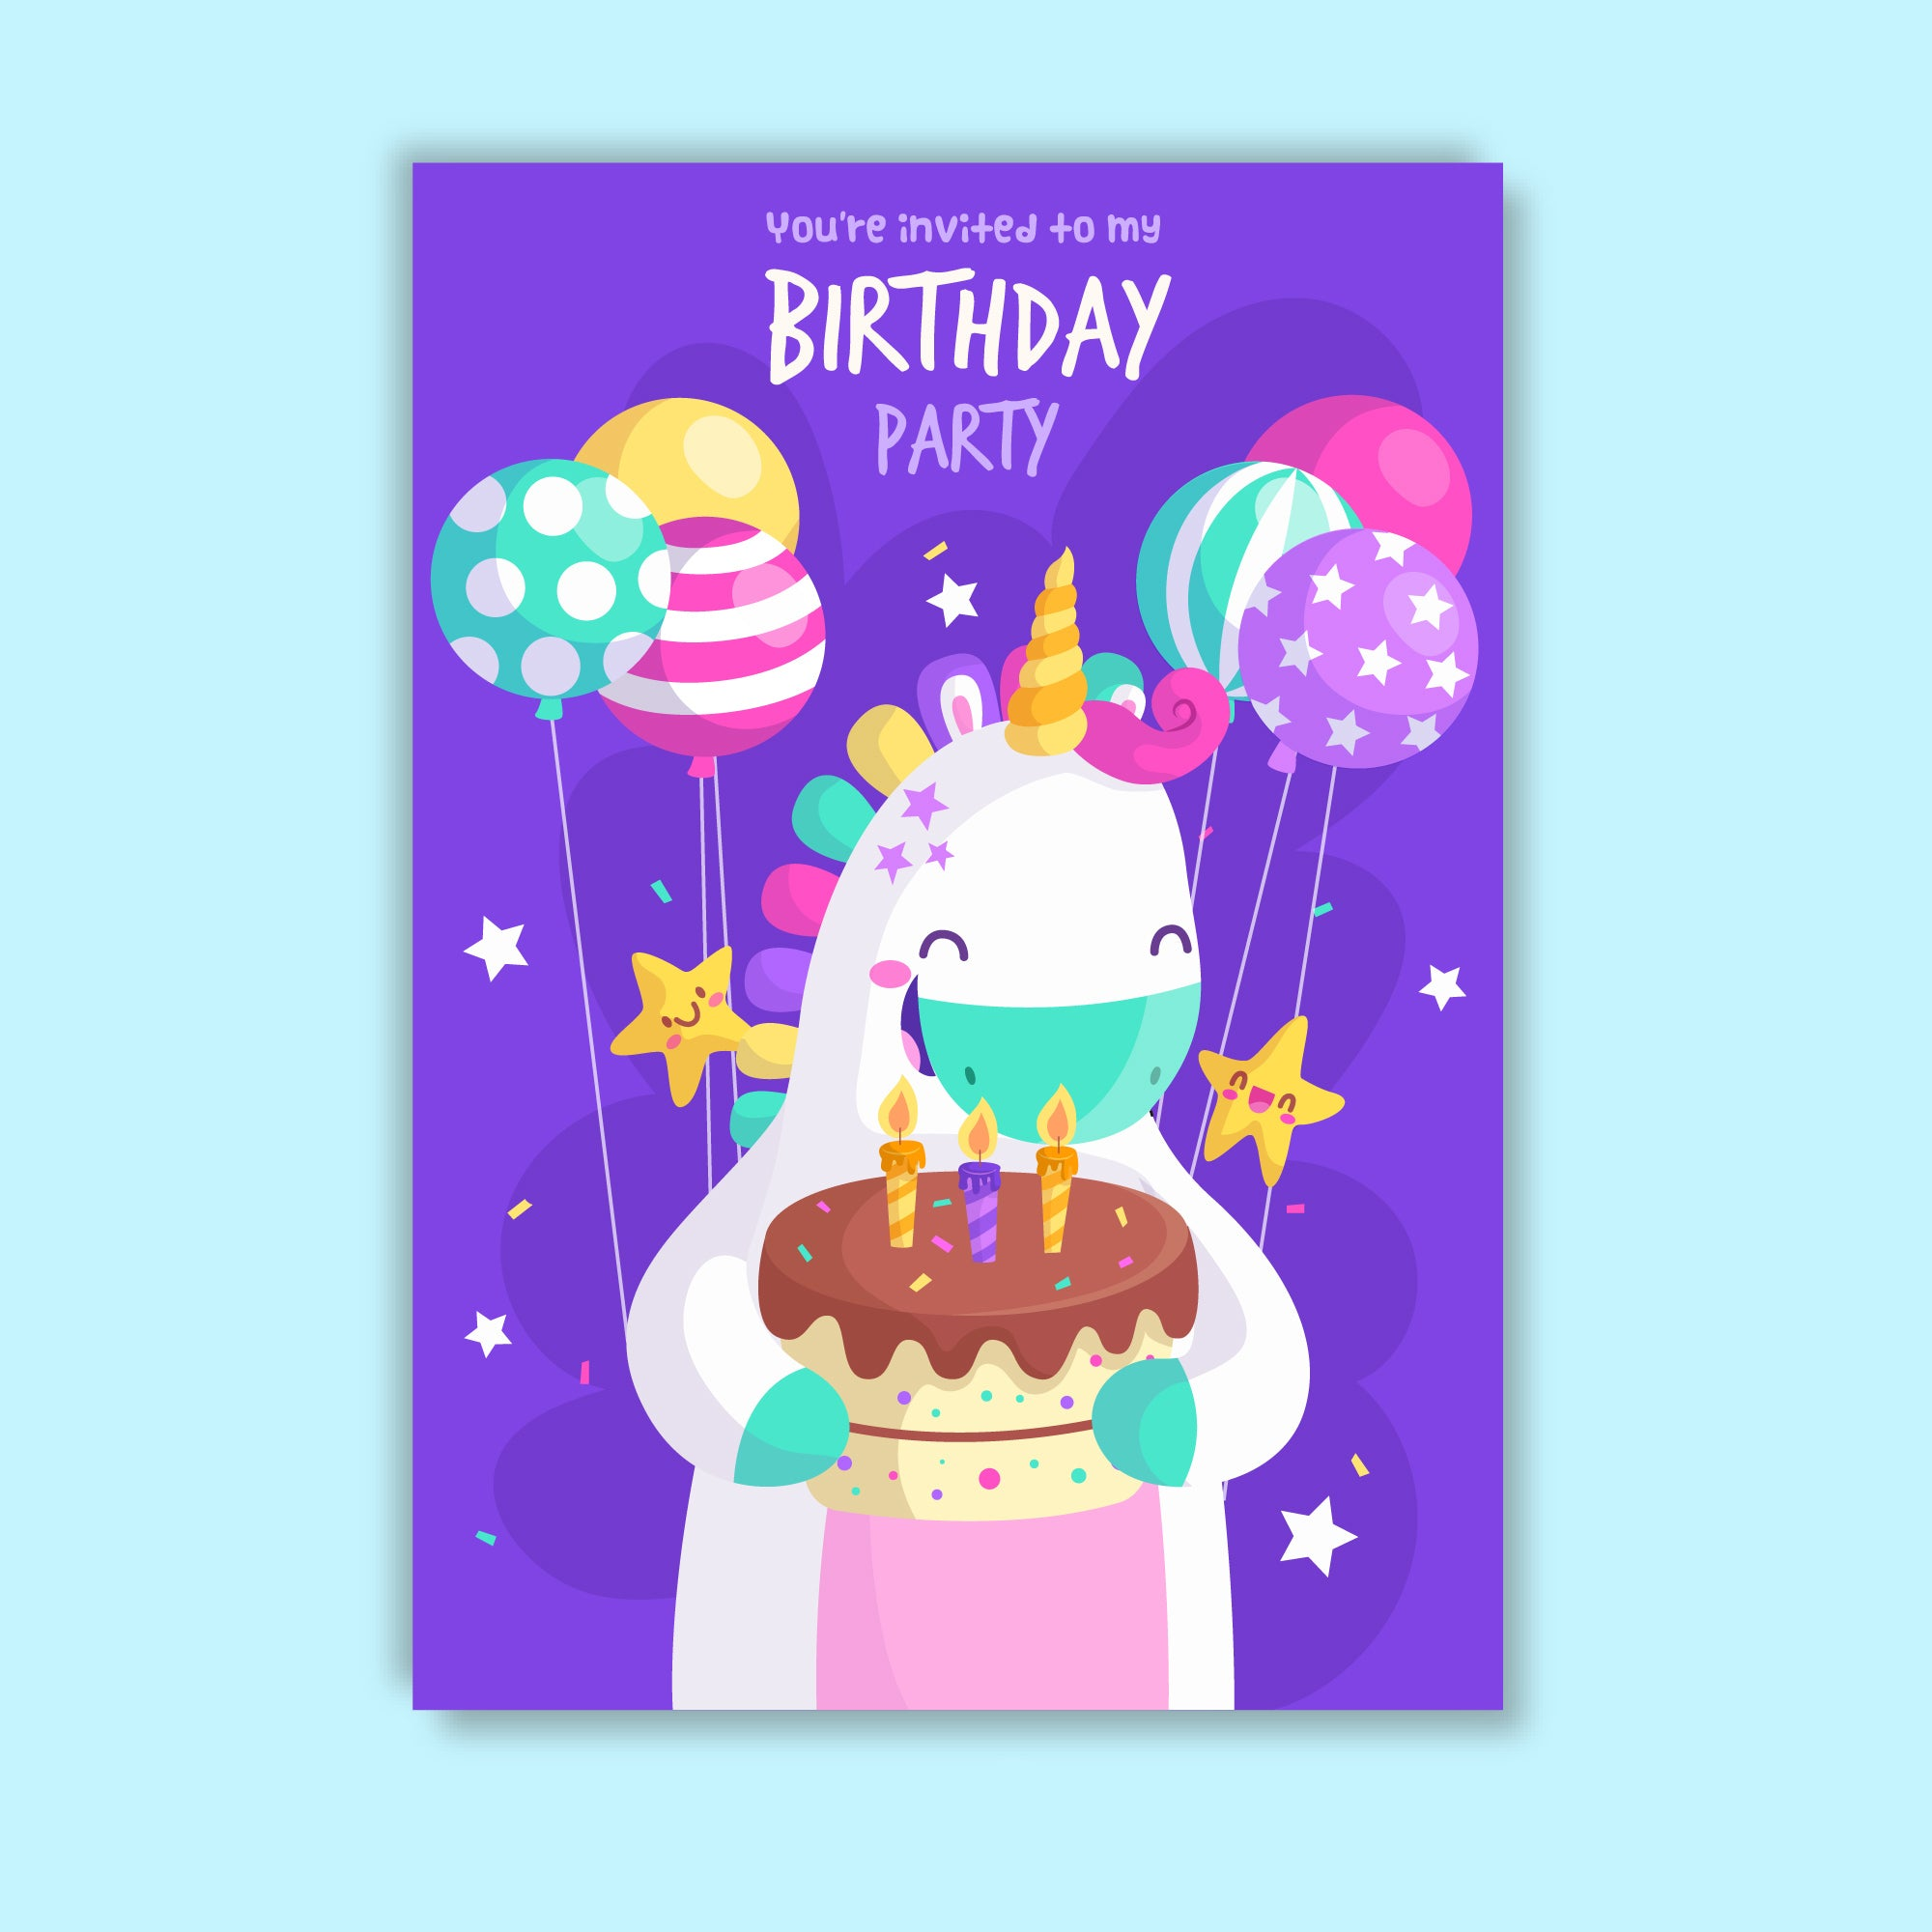 You Are Invited To My Birthday Party Unicorn Theme Invitation Card Set Of 25 Pcs